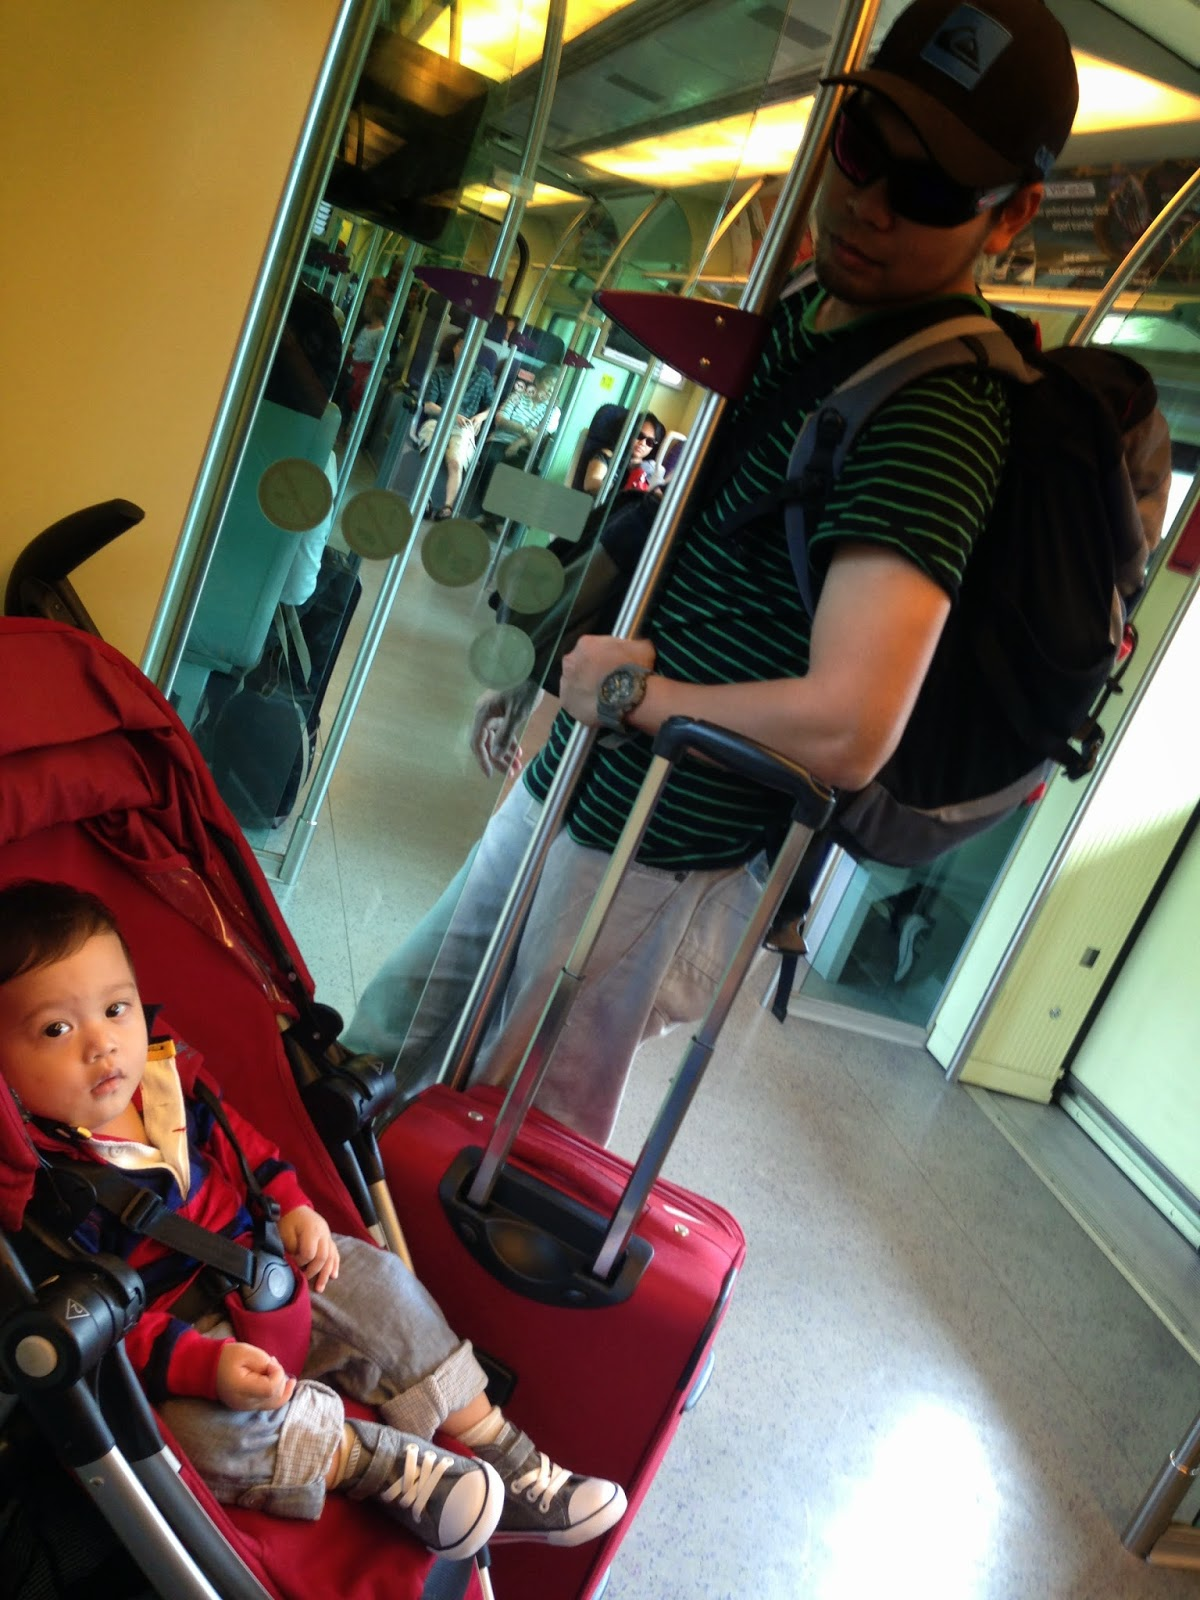 me + myself: Info on Travelling with baby stroller at